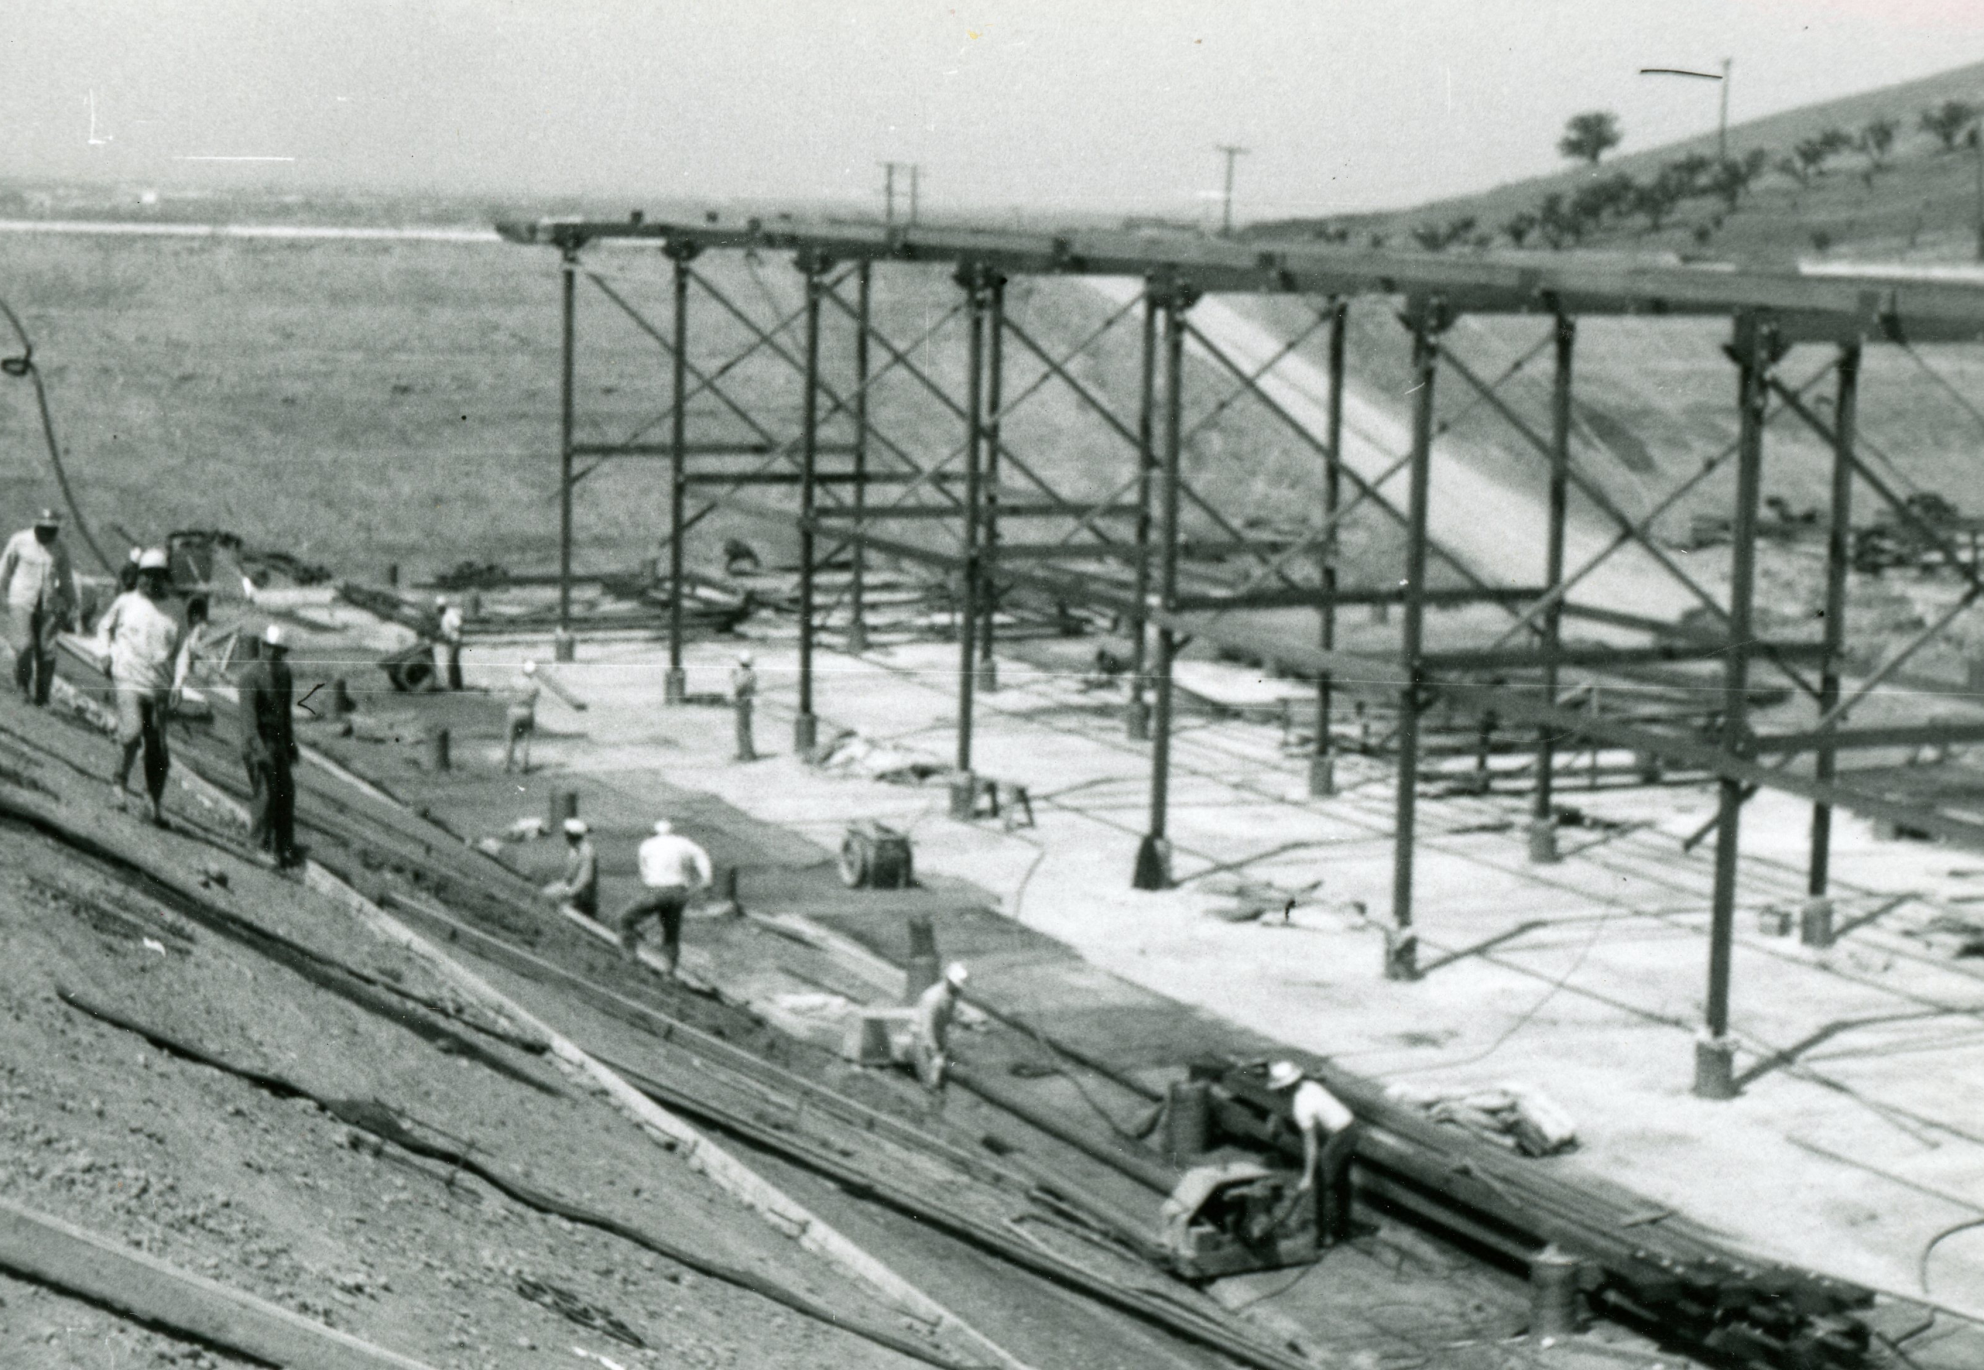 Columbine Historical Image 5 - black and white photo of workers constructing